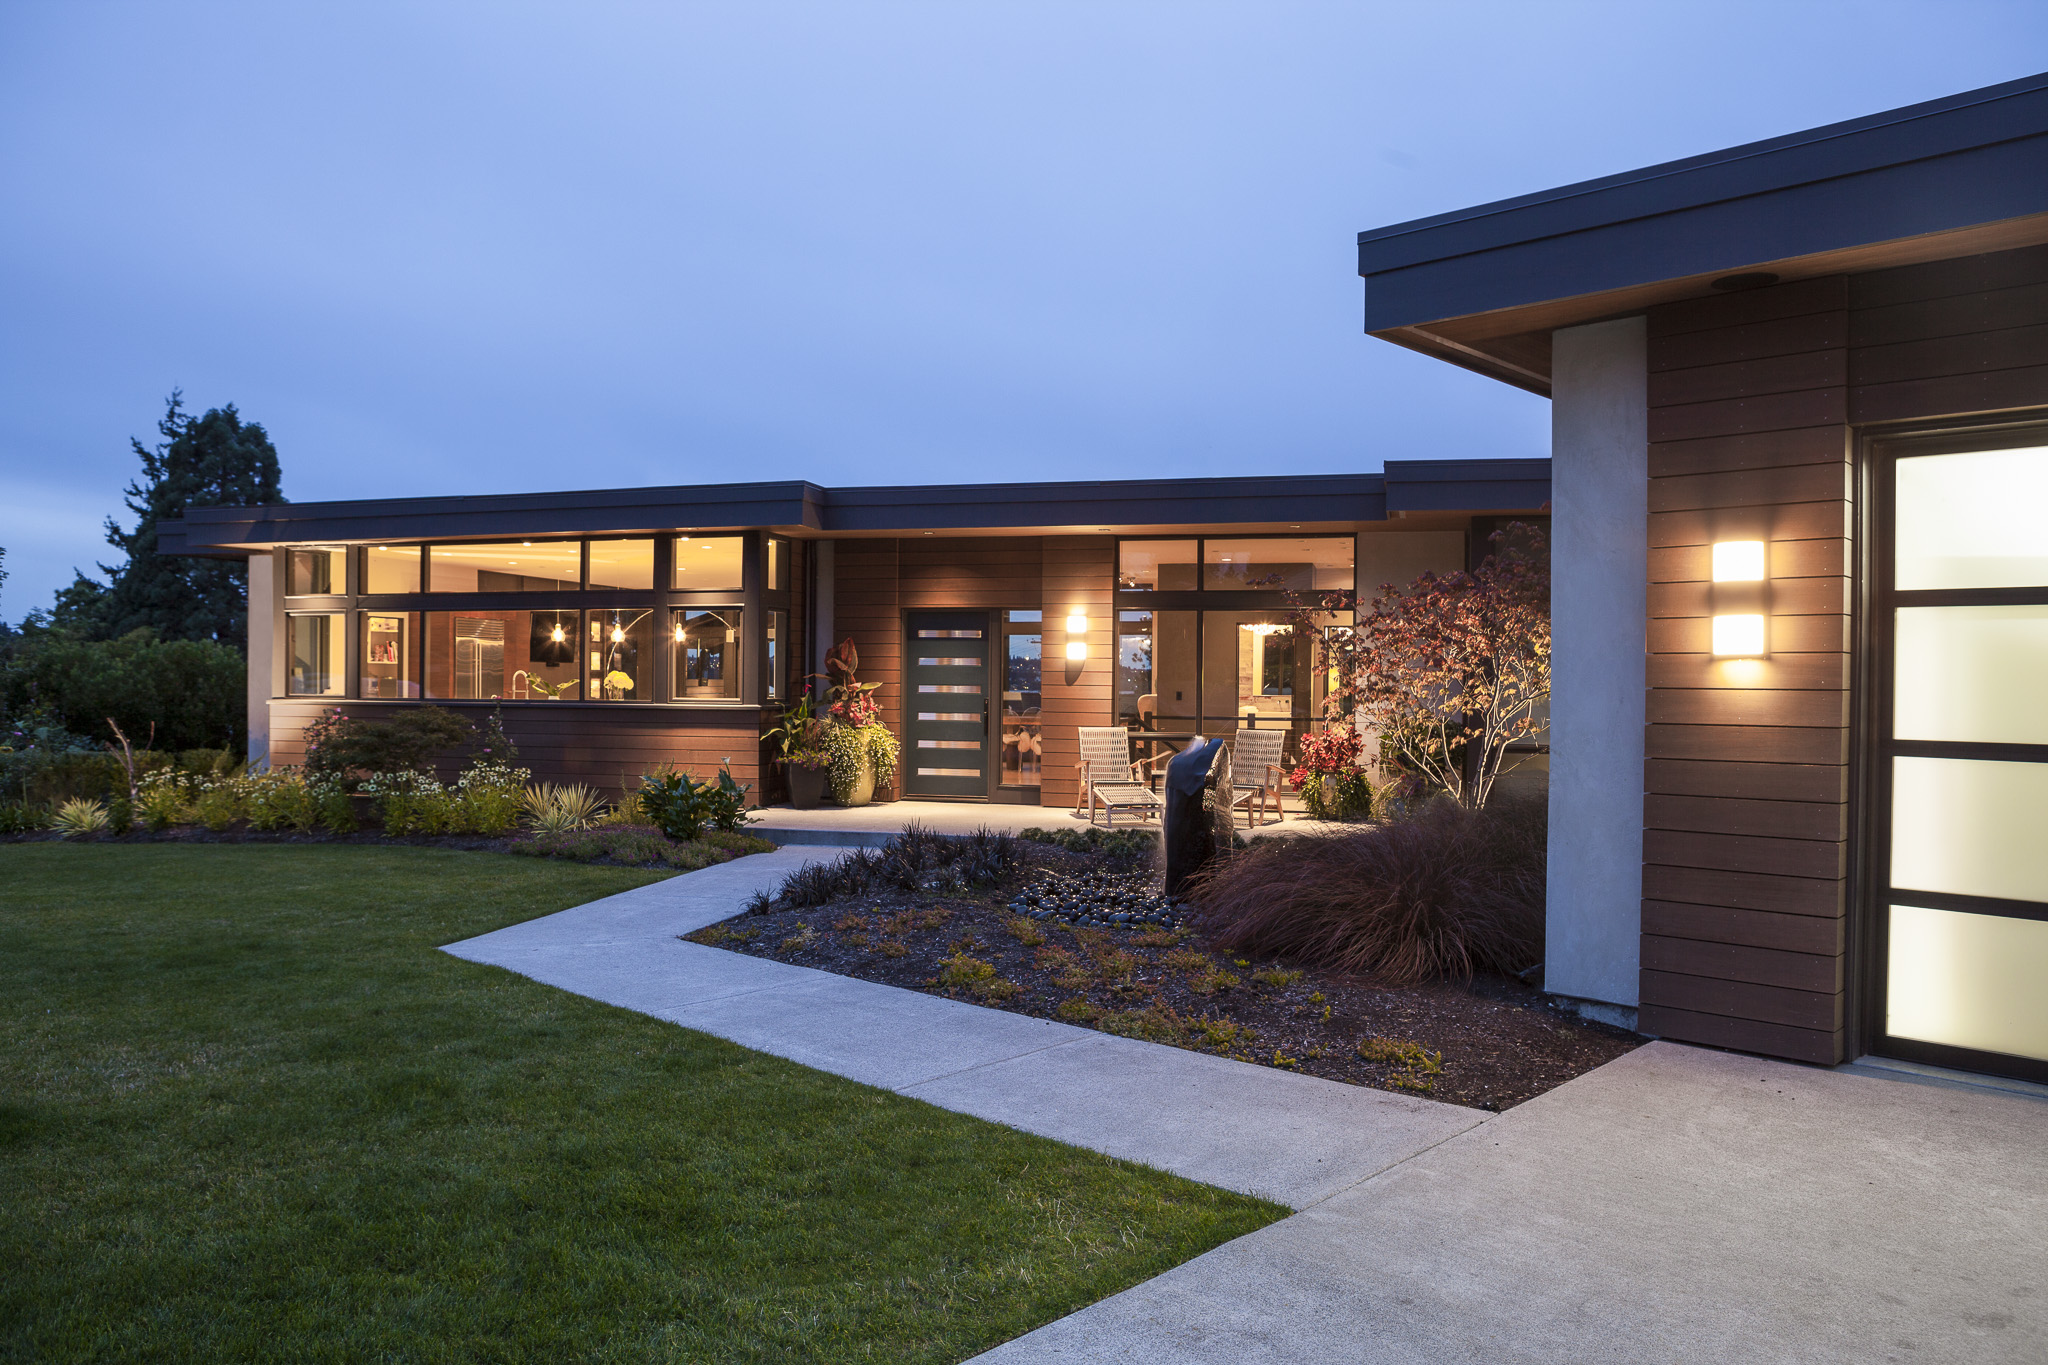 Yarrow point new home contemporary seattle paul moon